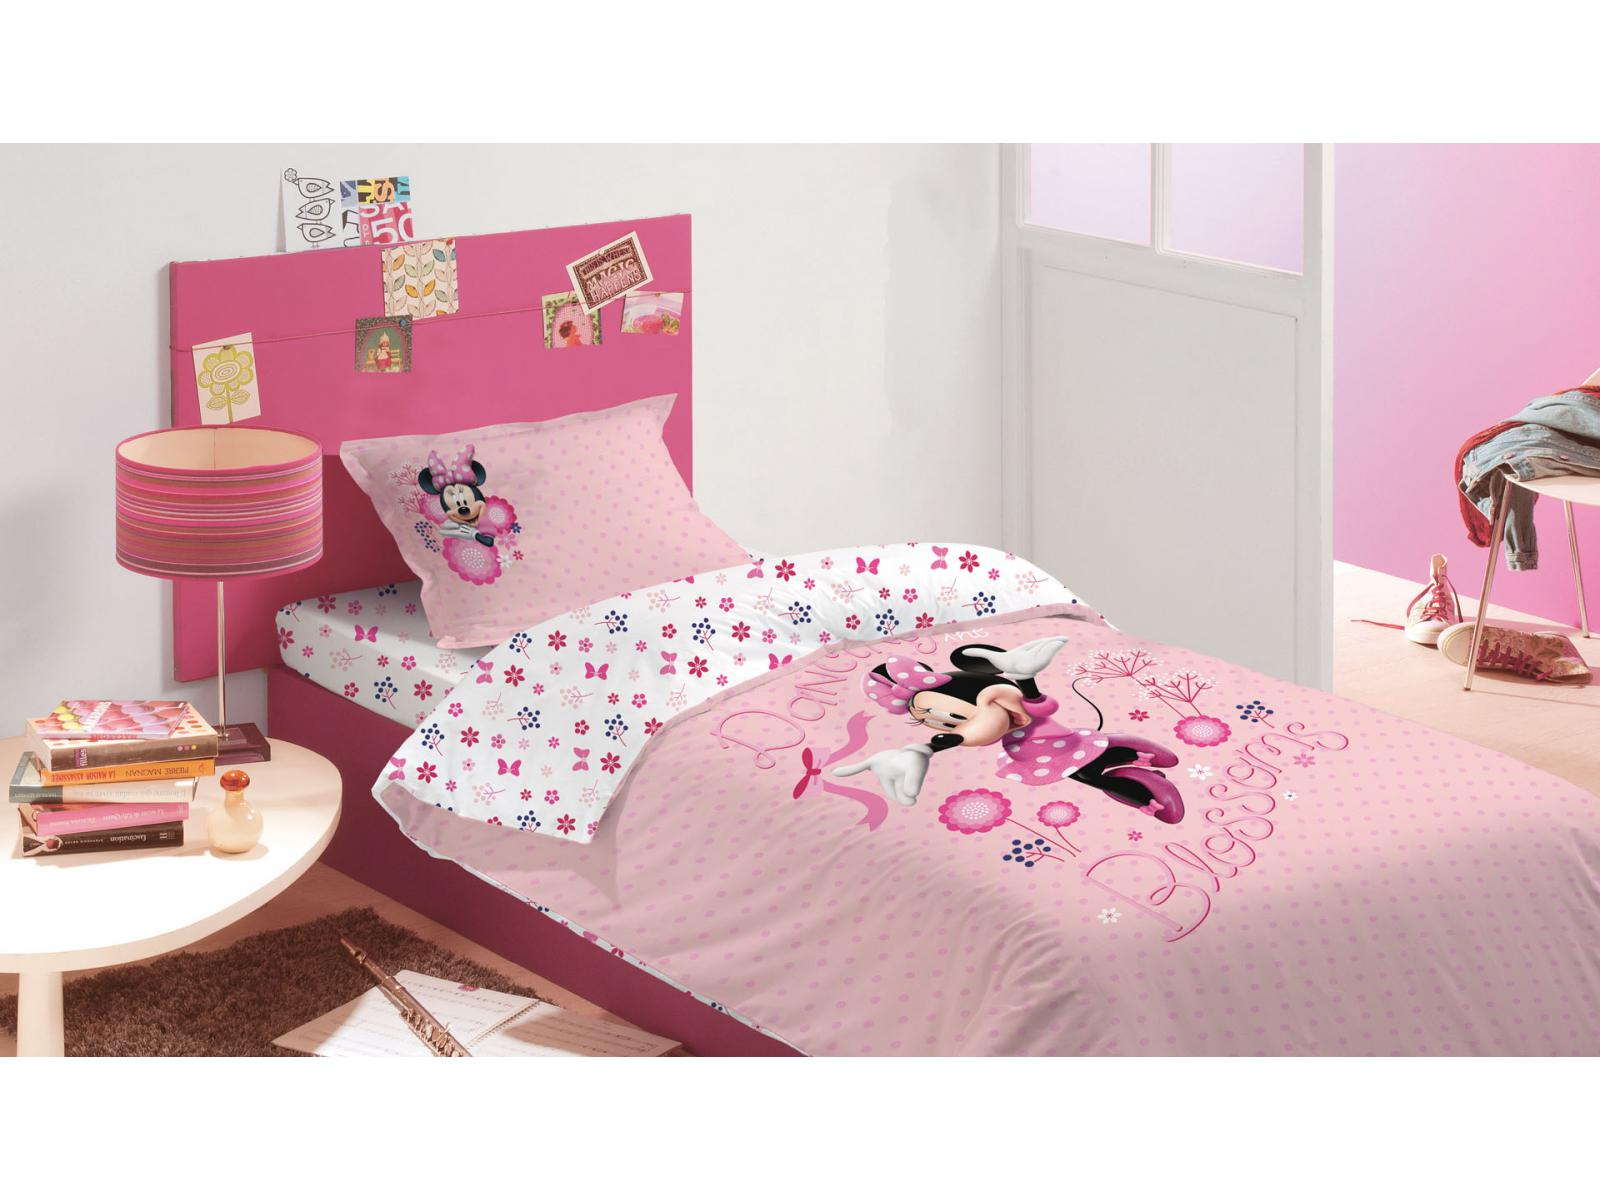 room studio parure housse de couette et 1 taie d 39 oreiller minnie. Black Bedroom Furniture Sets. Home Design Ideas